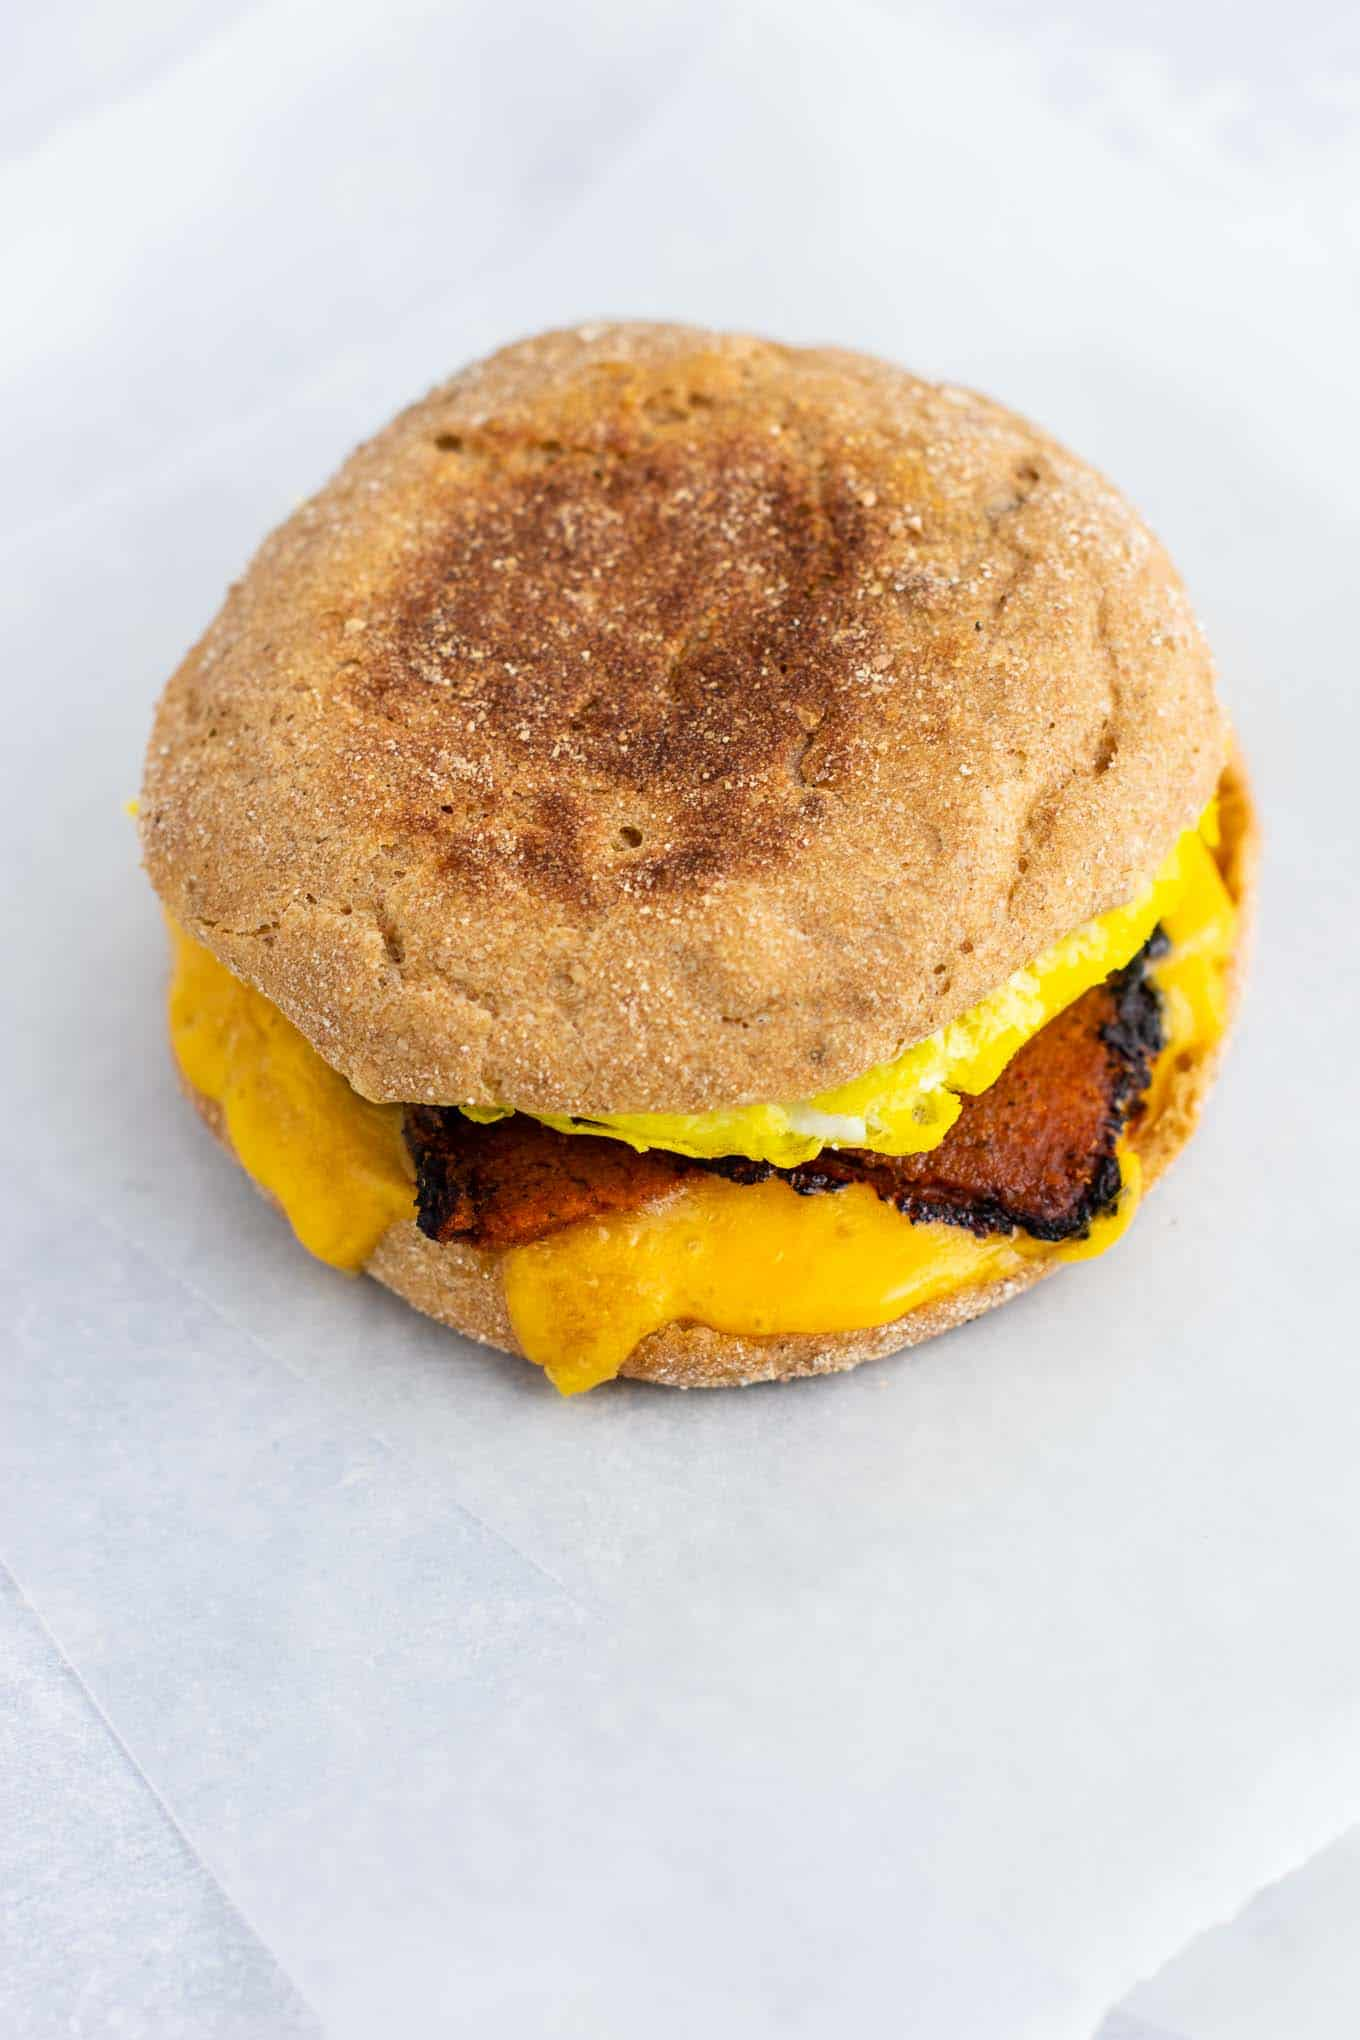 Vegetarian meal prep ideas – these easy English muffin breakfast sandwiches taste amazing and are so easy to make! #vegetarian #breakfast #mealprep #englishmuffin #breakfastsandwich